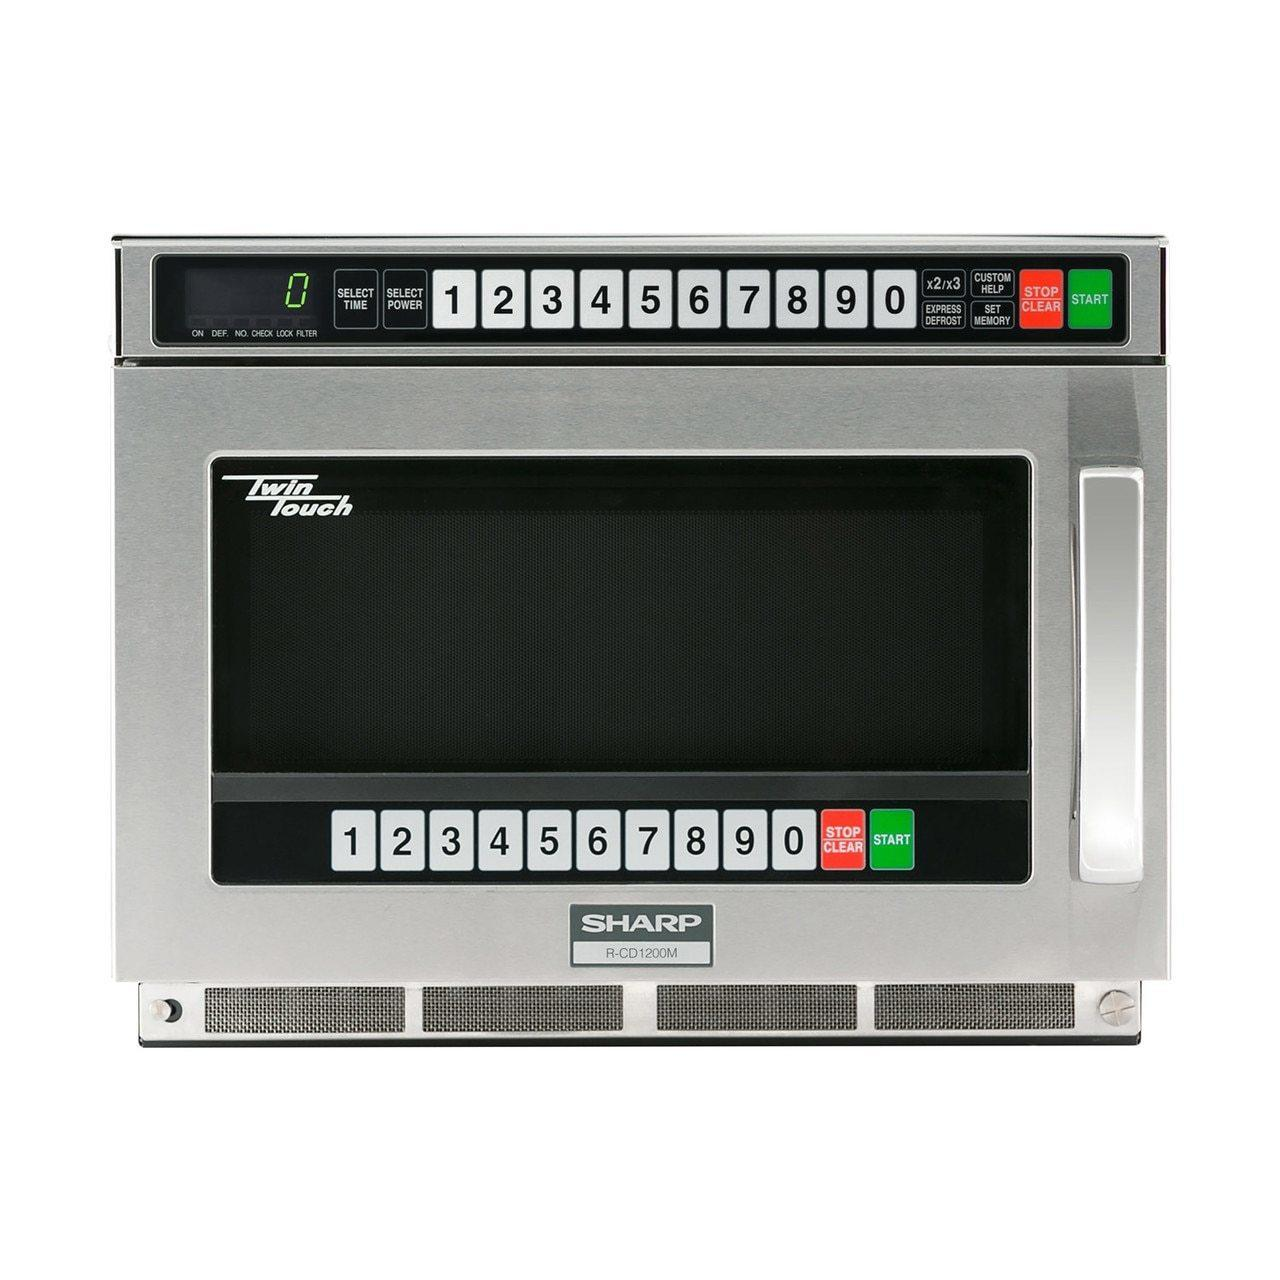 SharpSharp Twintouch 1200 Watt Commercial Microwave Oven With Dual Touchpads